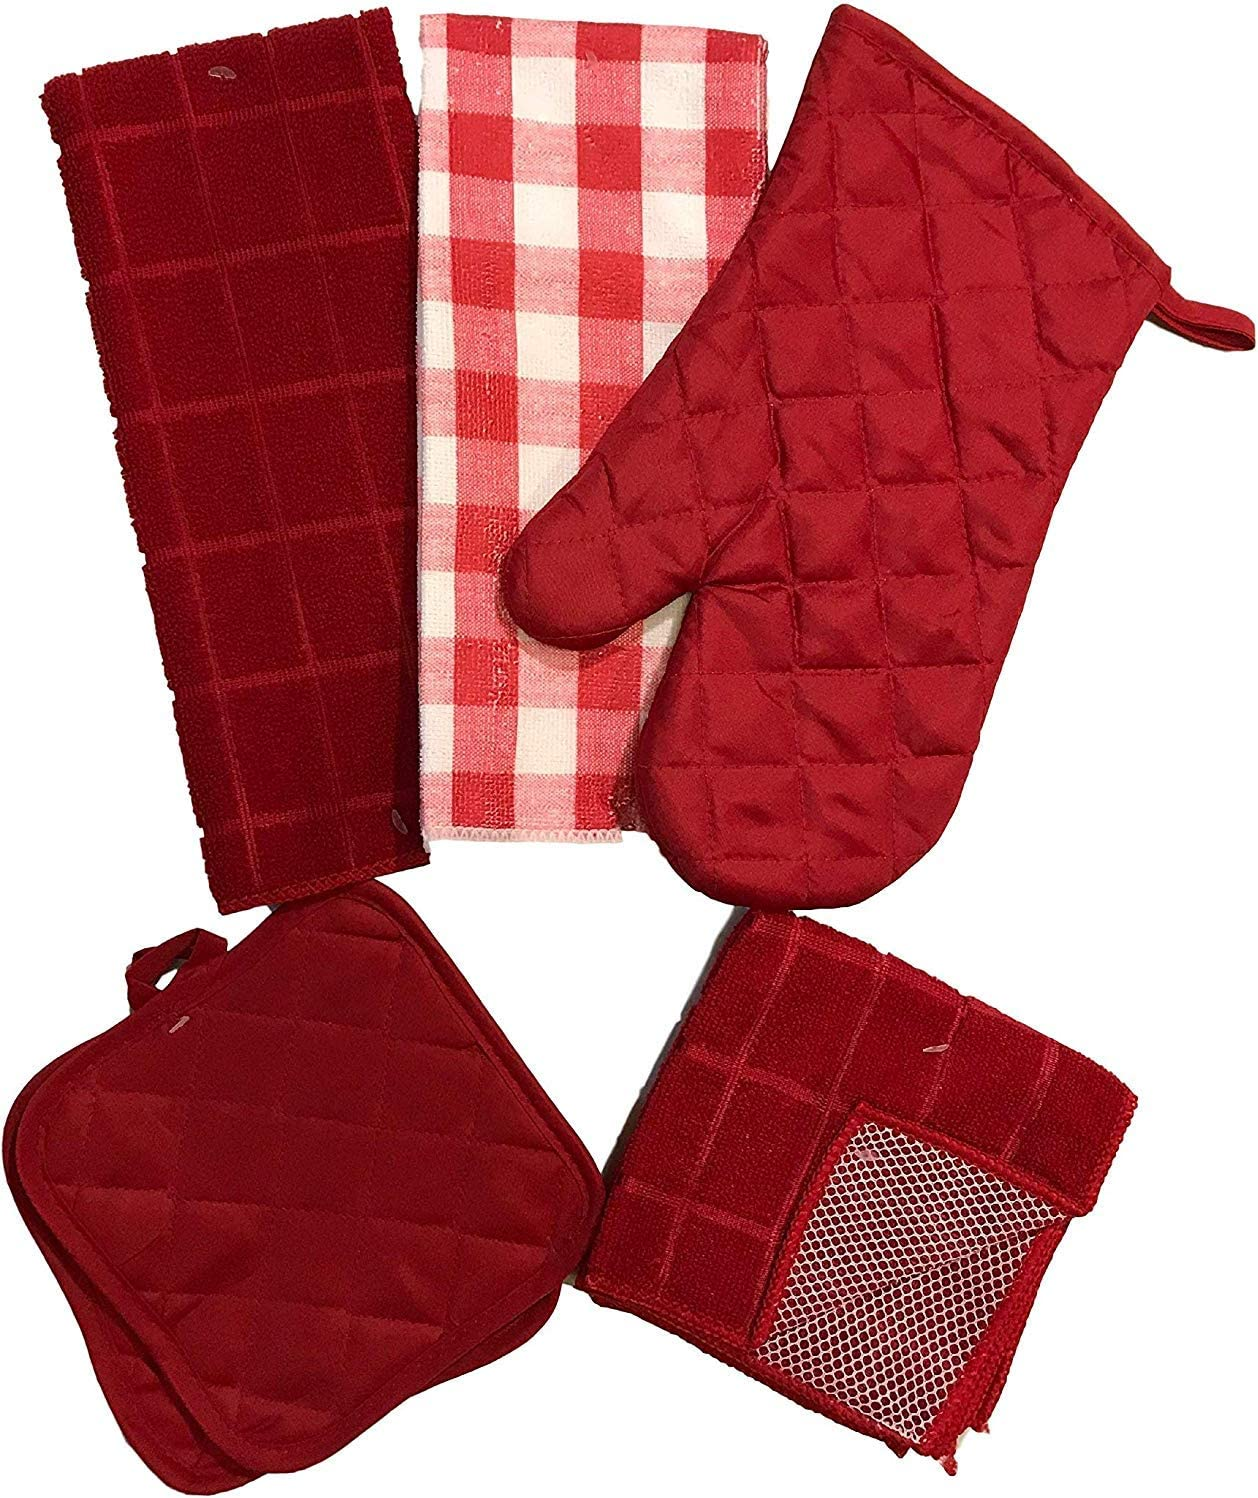 Red /& White Checkerboard 7 Piece Kitchen Linen Bundle with 2 Dish Towels and 1 Oven Mitt 2 Dish Cloth Scrubbers 2 Potholders